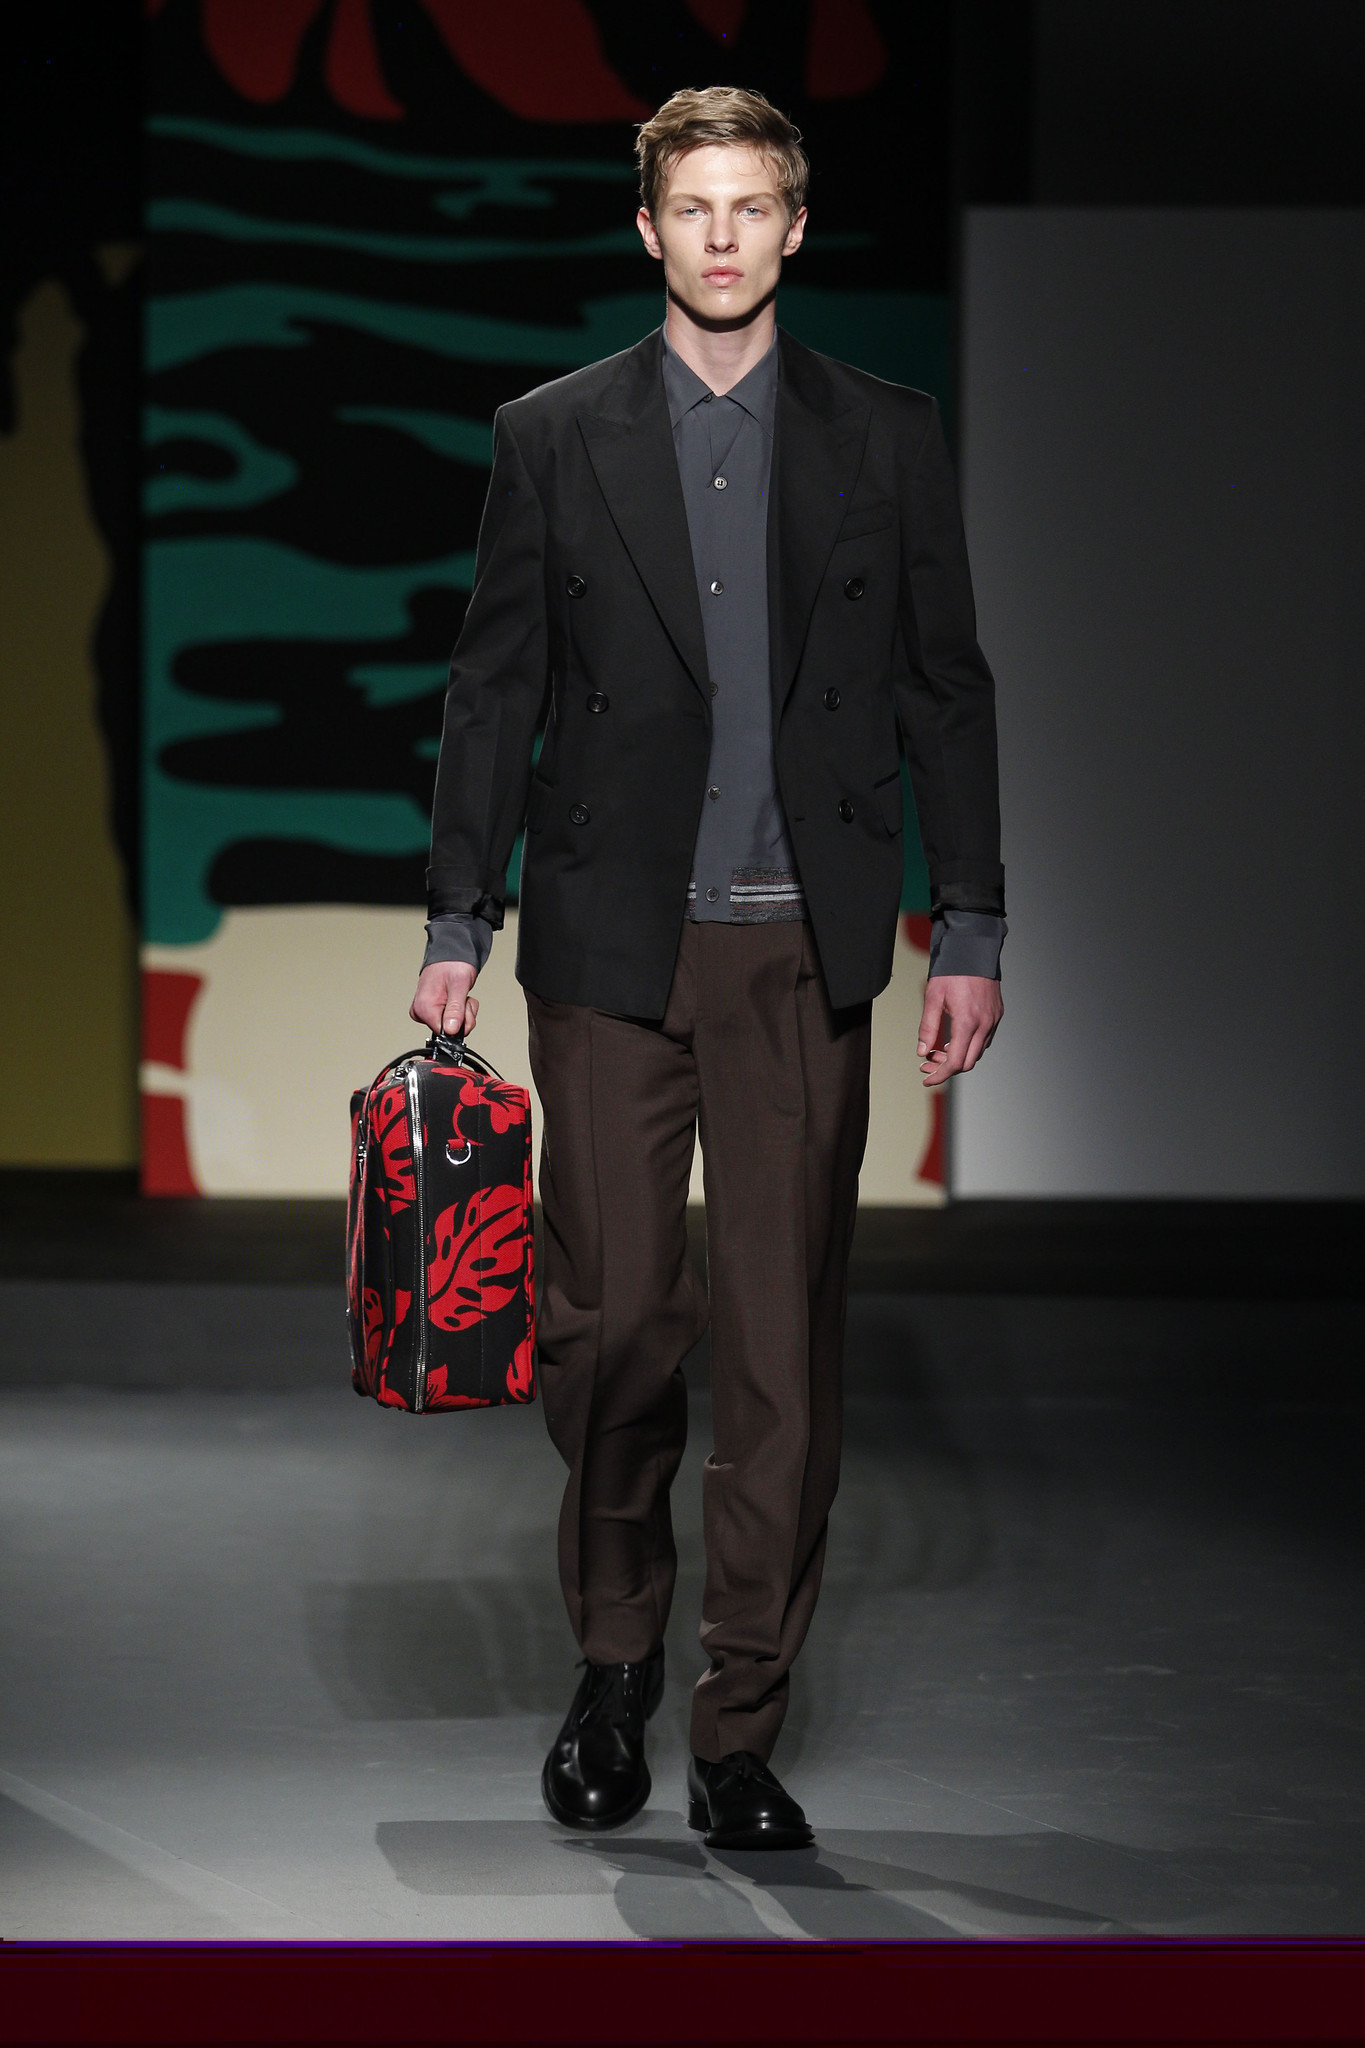 Spring Interesting Year in Men's Fashion March 12, Category: Men's Fashion Comments: No comments Fashion conscious men all around the world change their wardrobe every season as trends that might be 'in' this season, this year might not have been stylish in the same season last year.